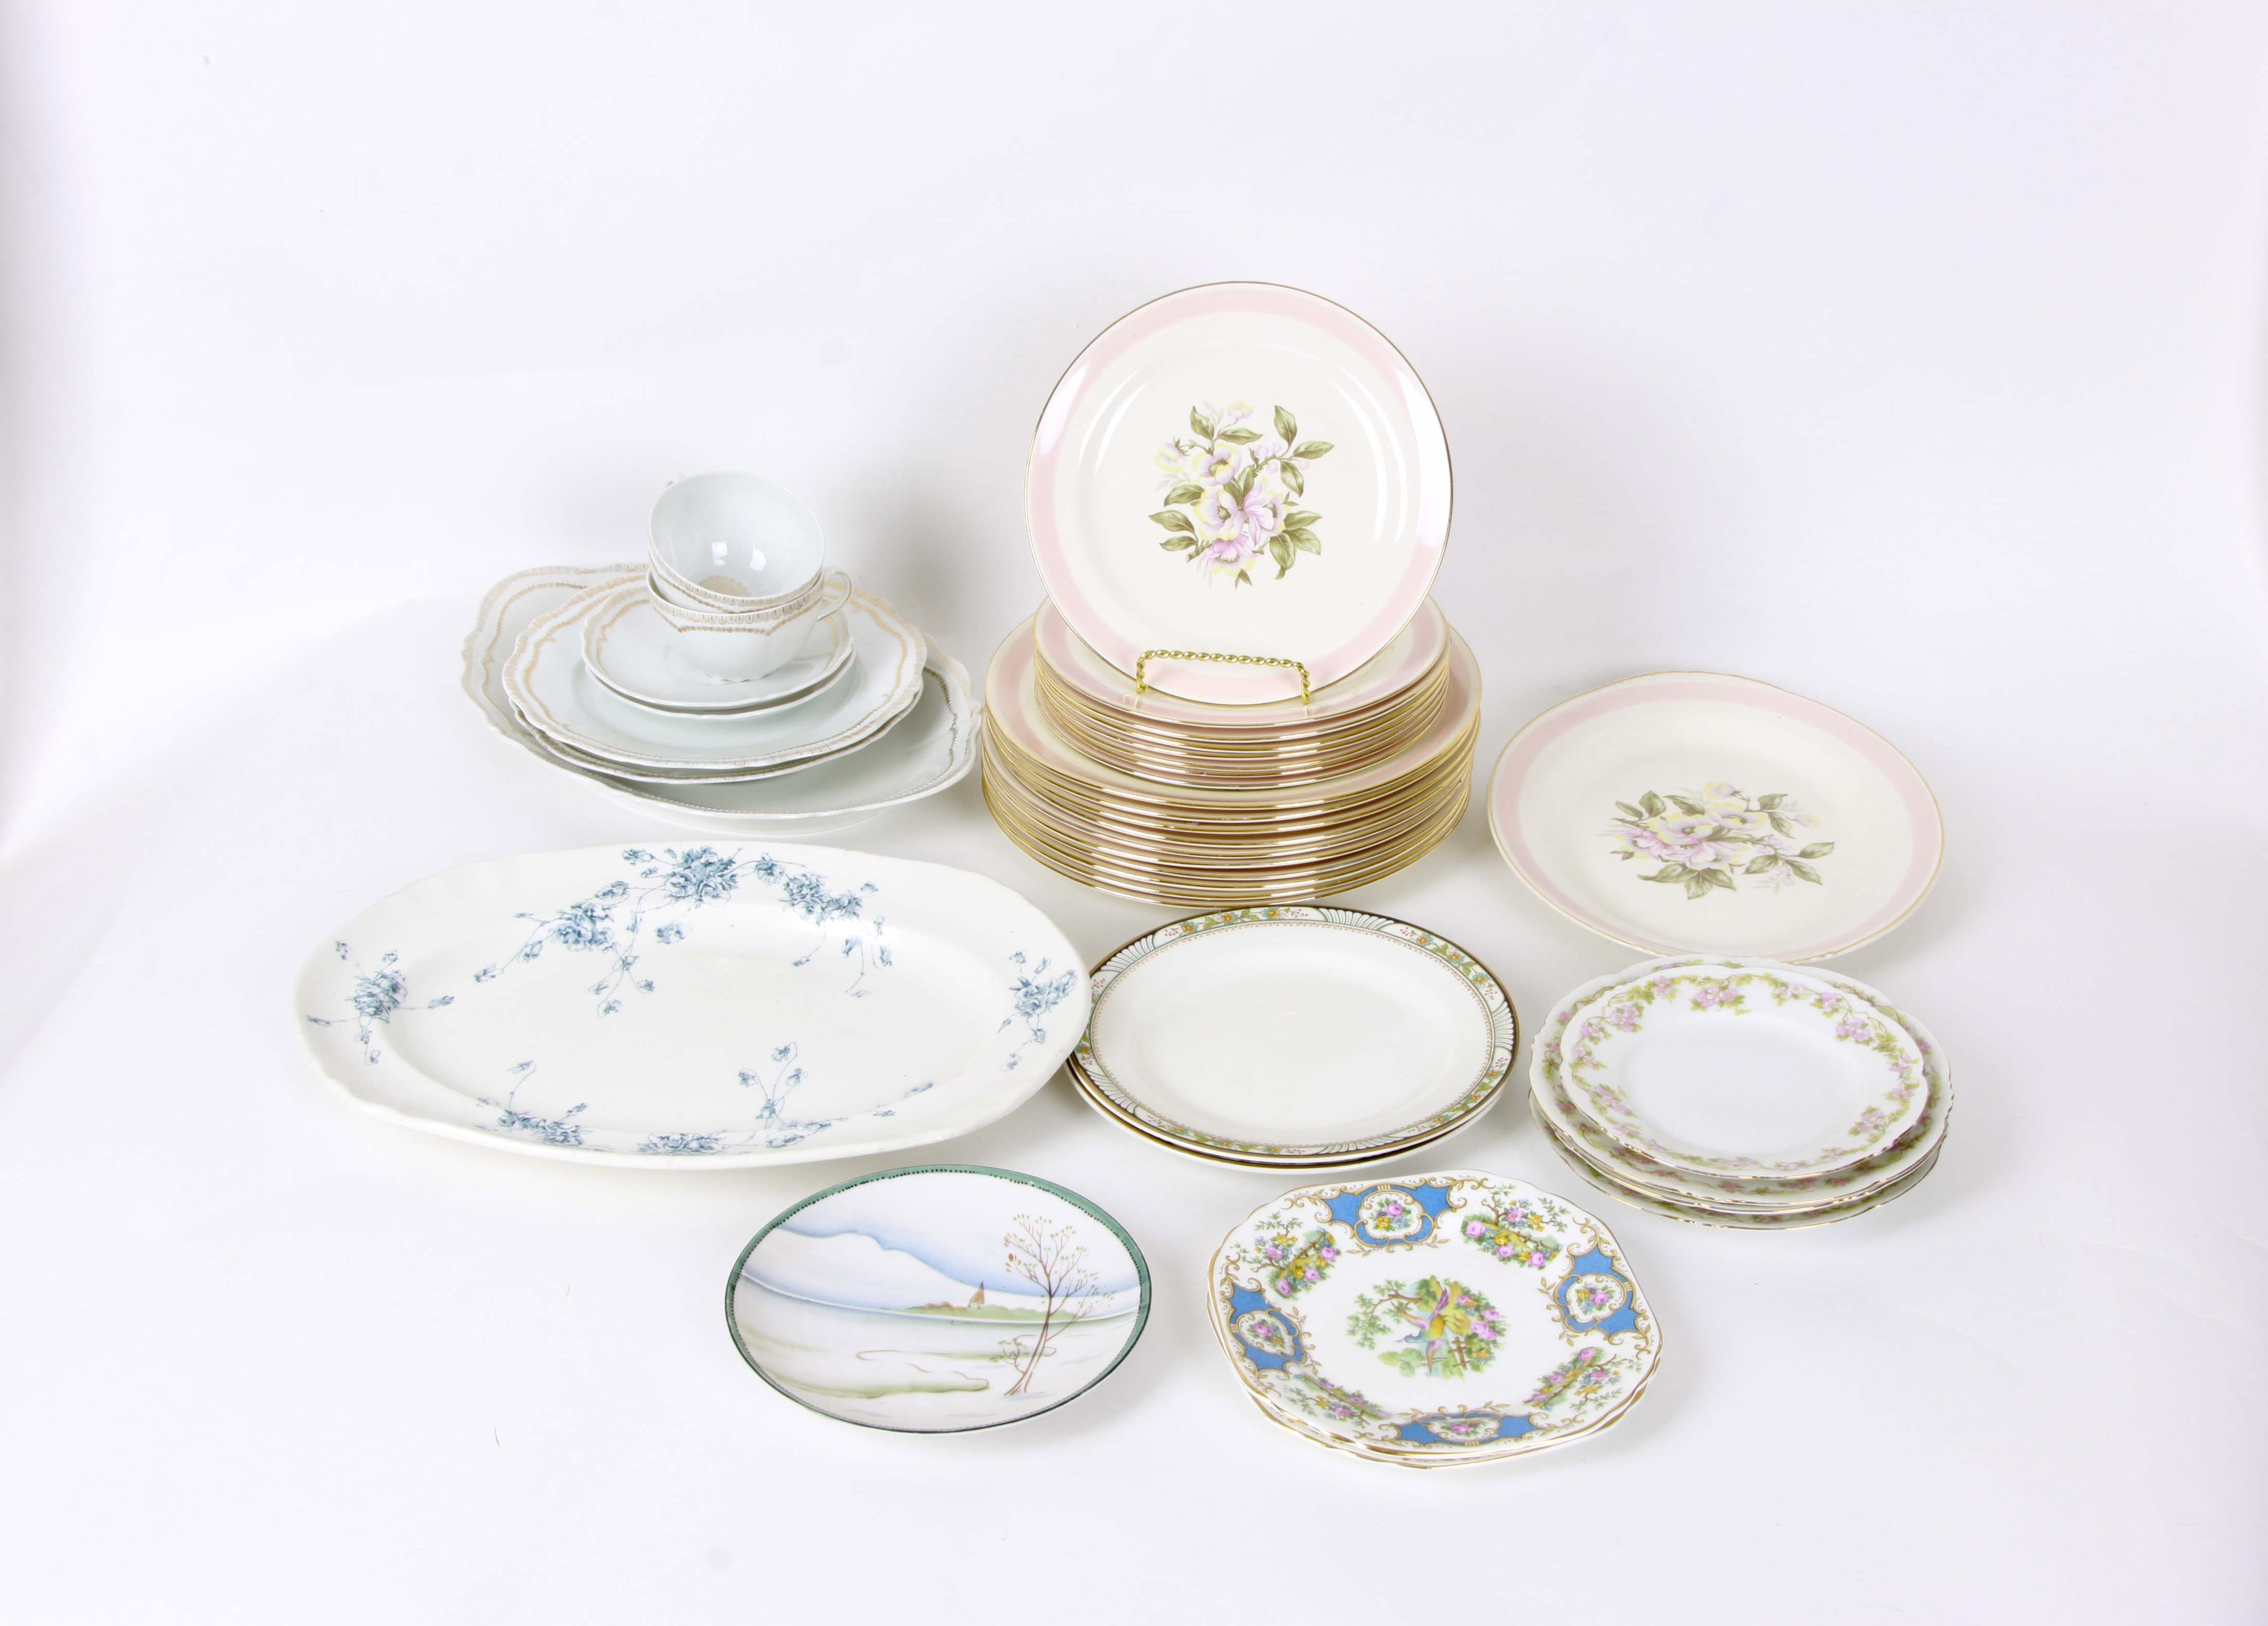 A Variety of China Tableware